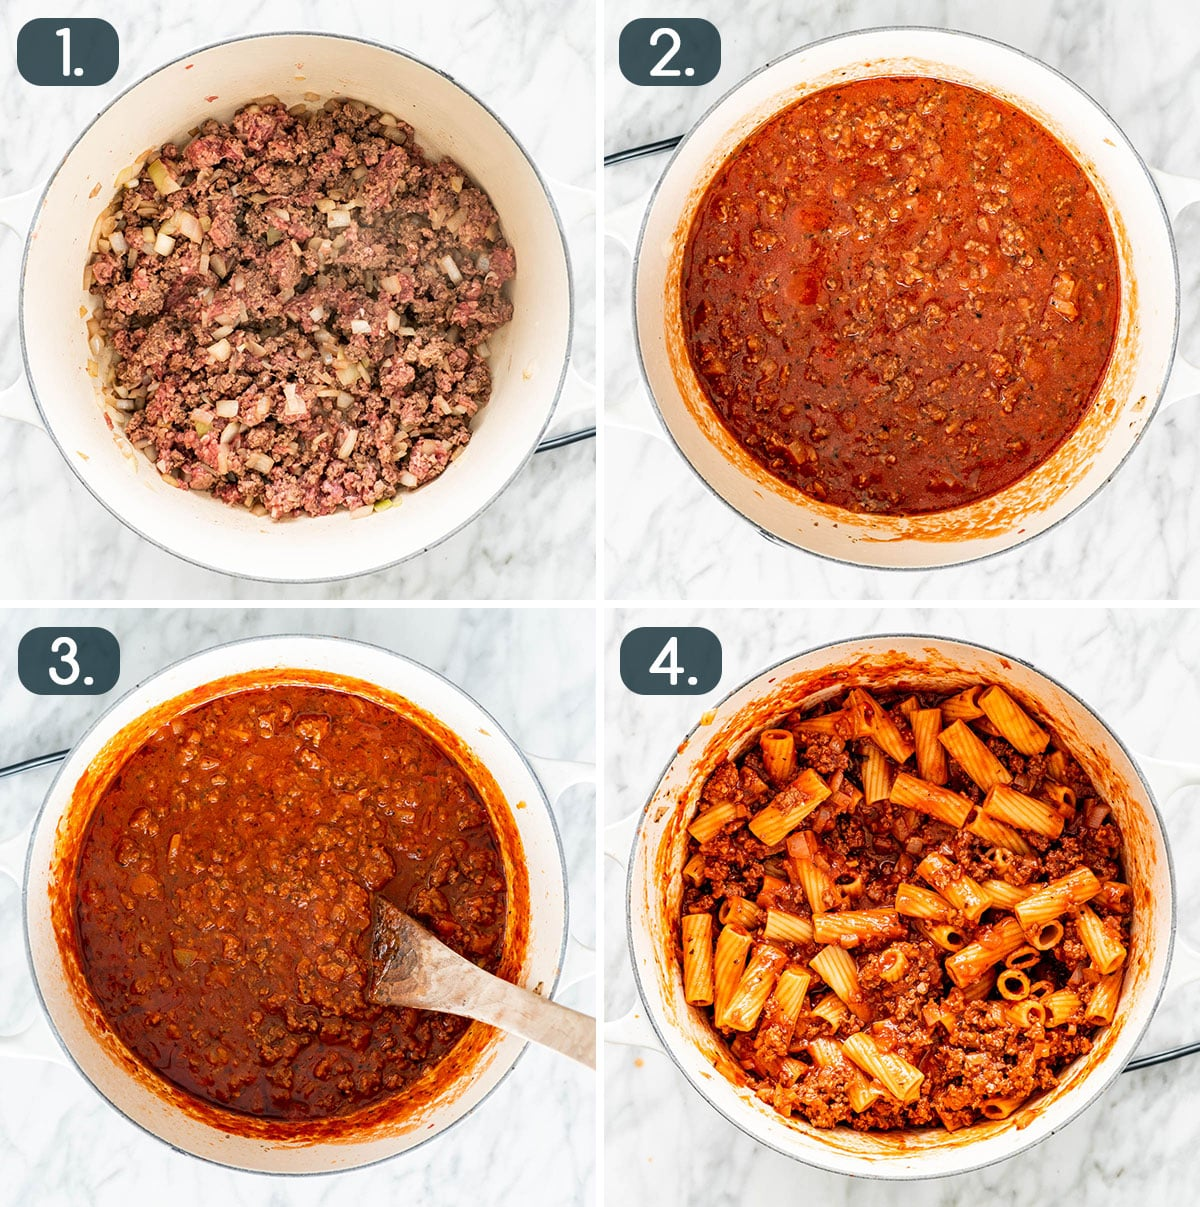 process shots showing how to make sauce for baked ziti